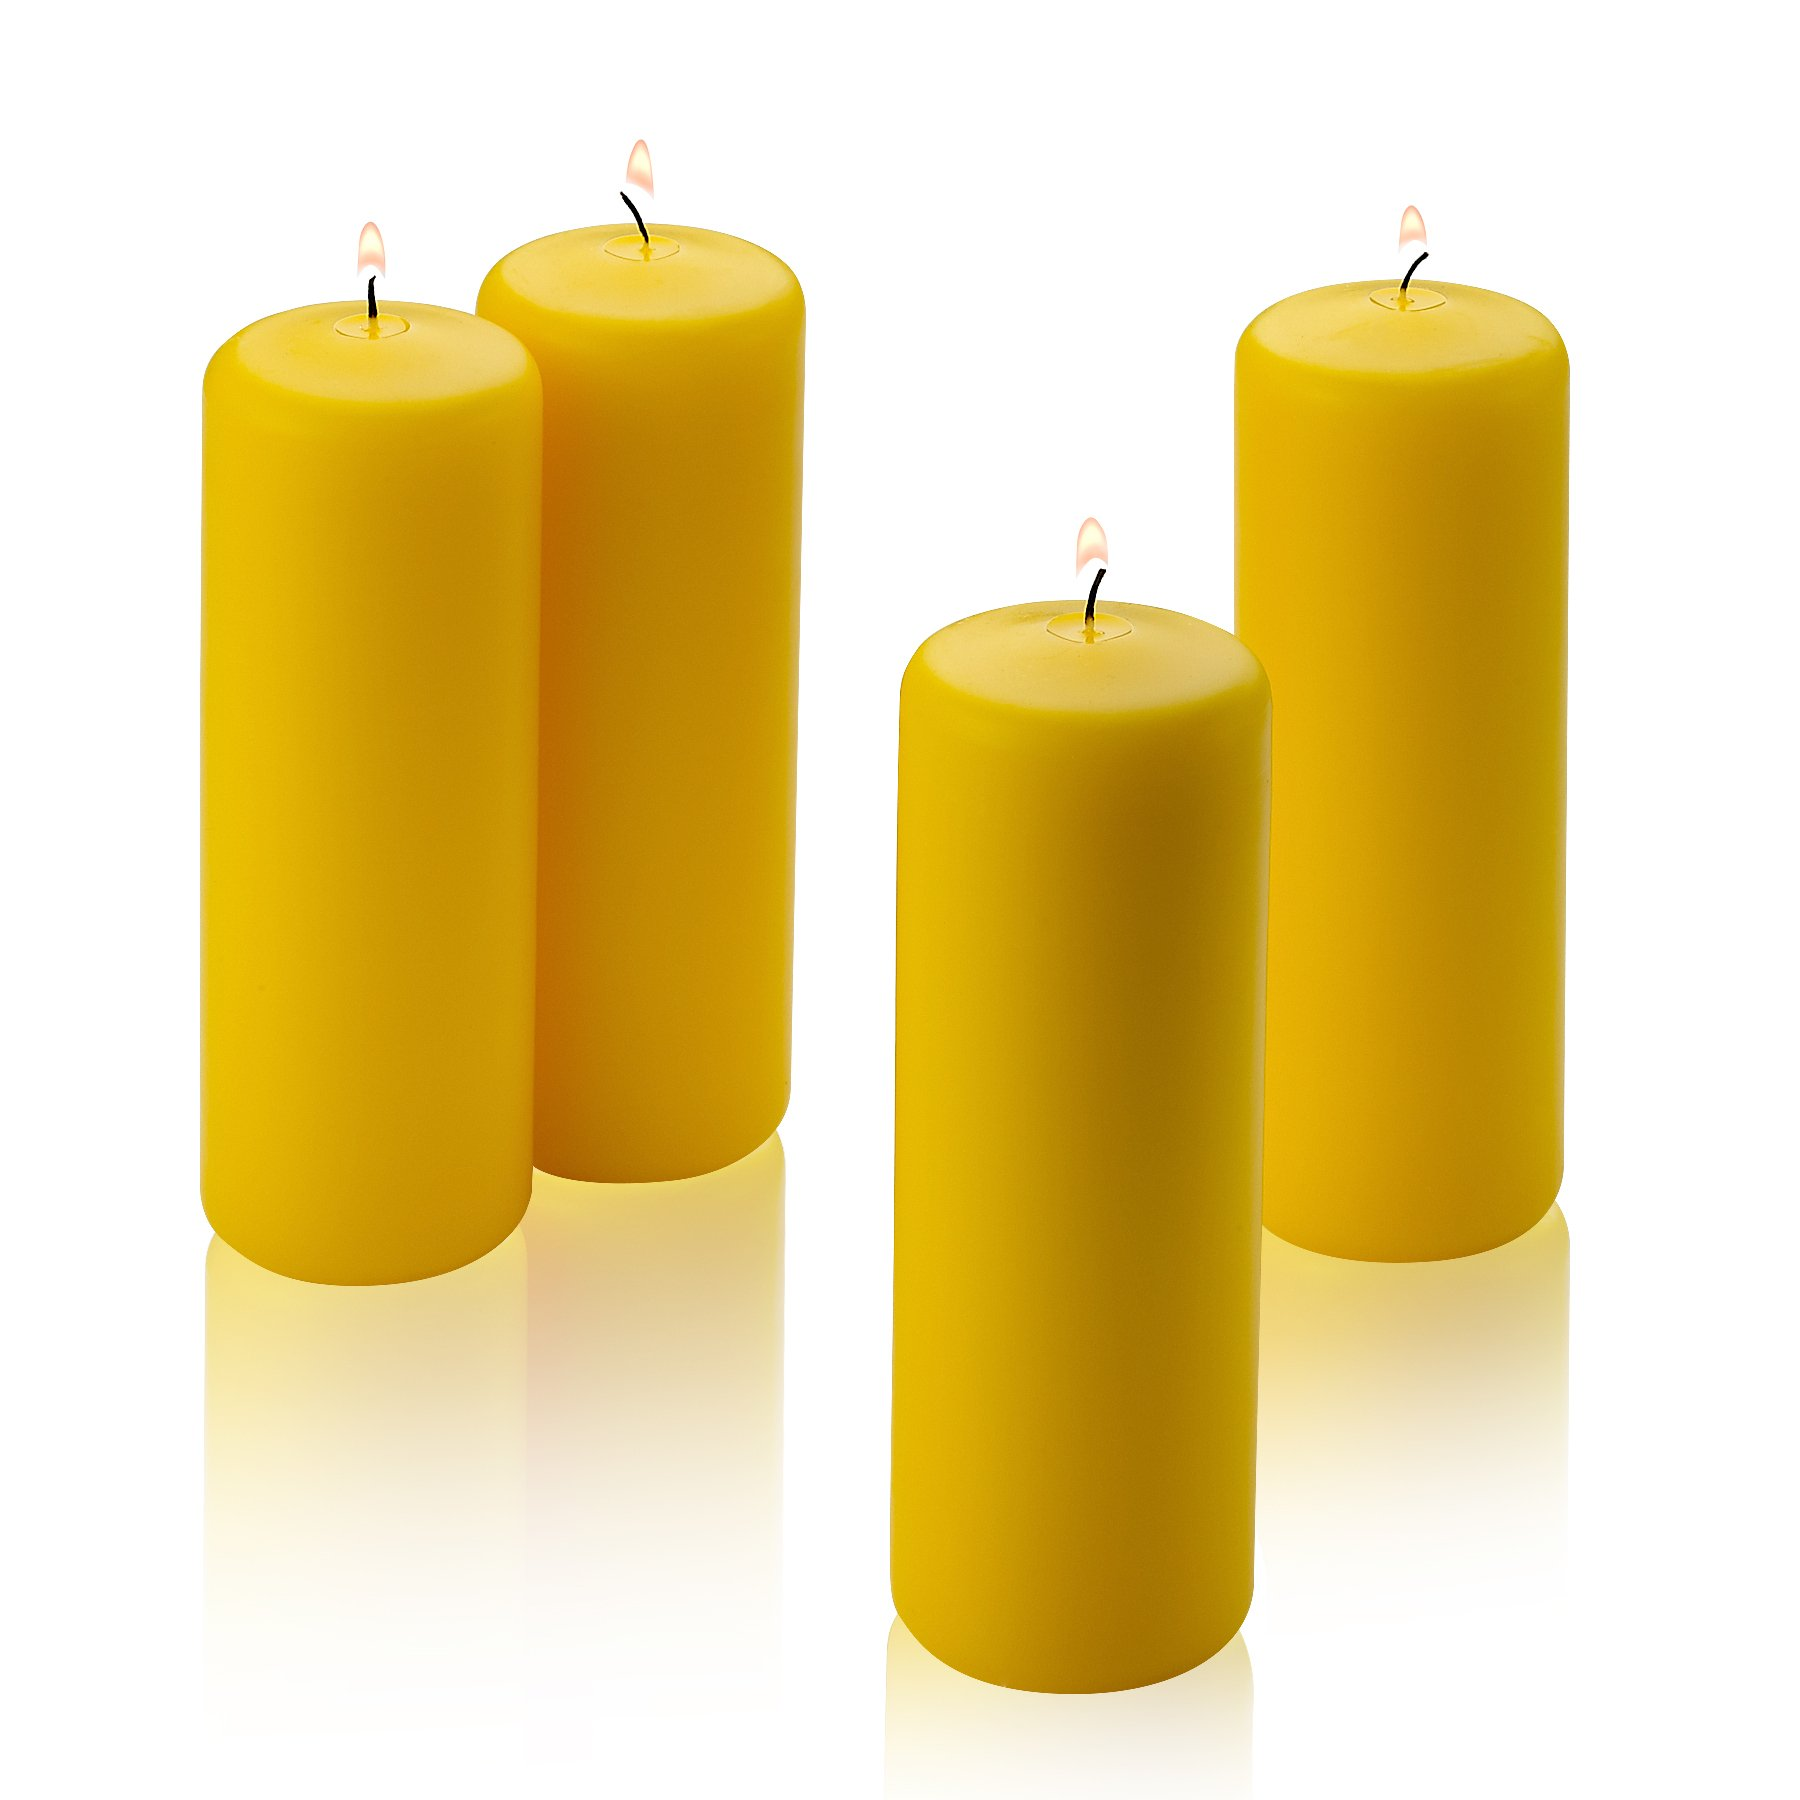 Light In The Dark Citronella Pillar Candle - Set of 4 Yellow Citronella Scented Pillar Candles 2'' Inch Wide X 6'' Tall